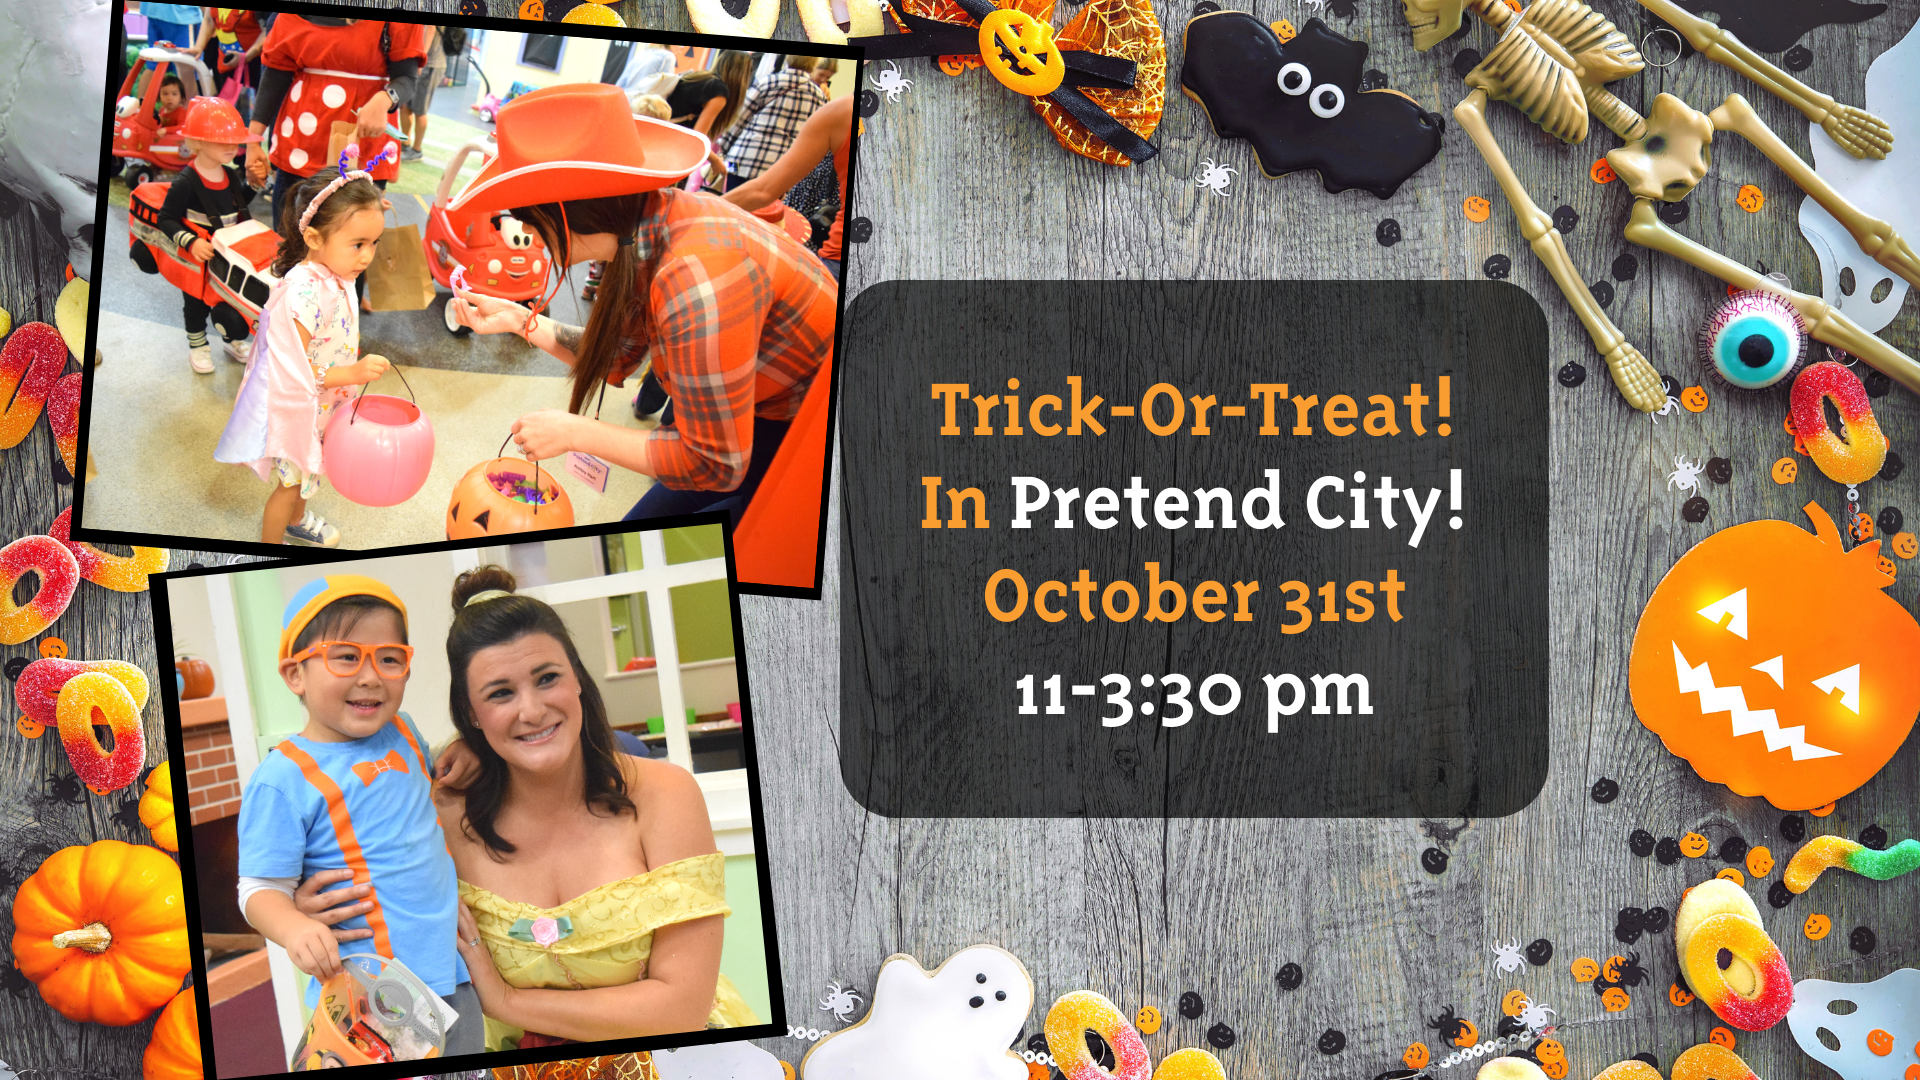 Pretend City is hosting a special Halloween event for Halloween 2020. Trick-or-Treat extravaganza will be fun for toddlers, children and families.